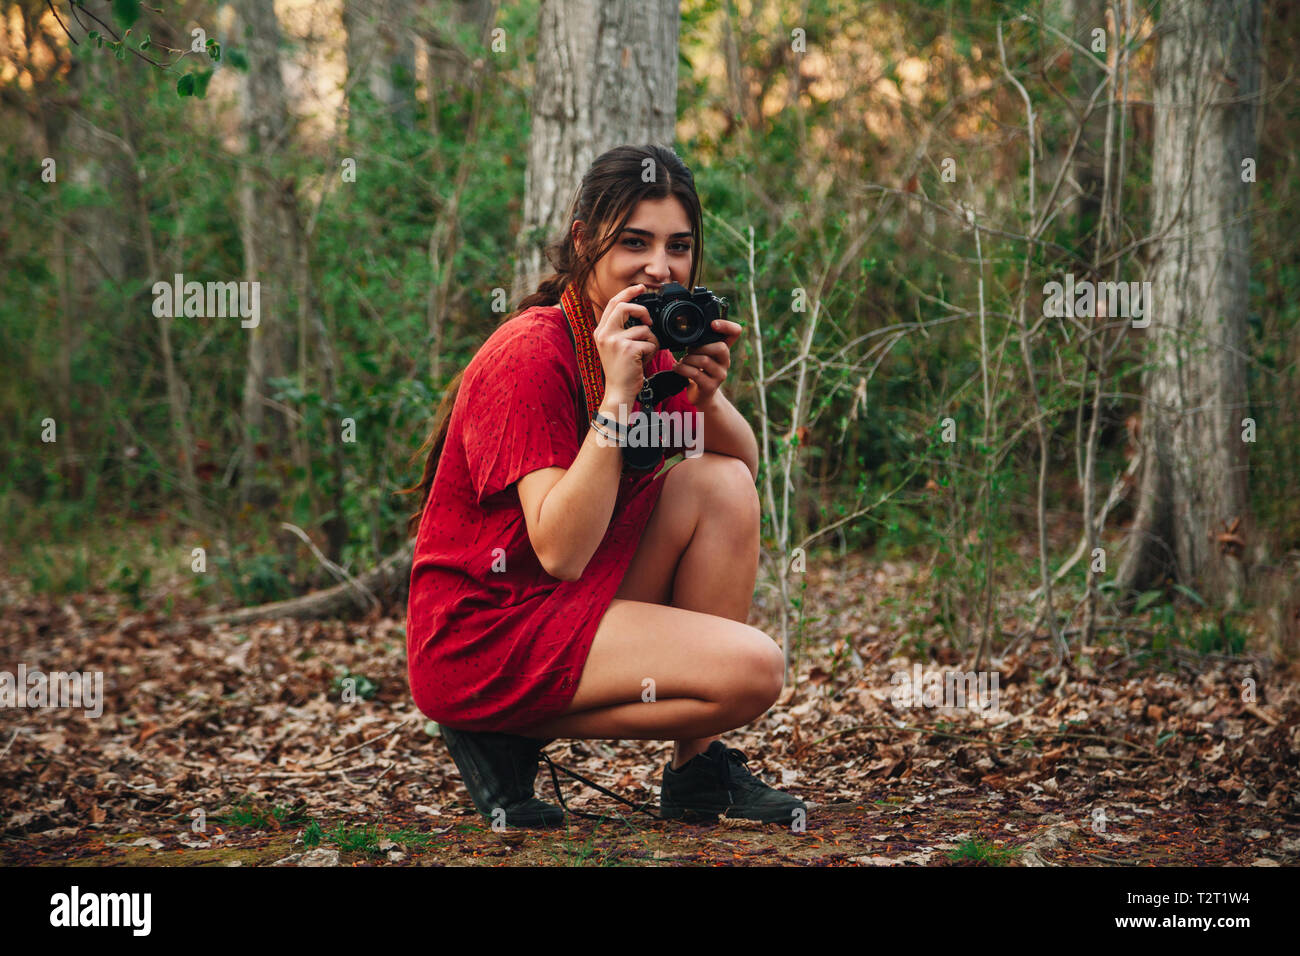 Young smiling woman taking photos in the forest with her analogical camera wearing a red mini dress. - Stock Image